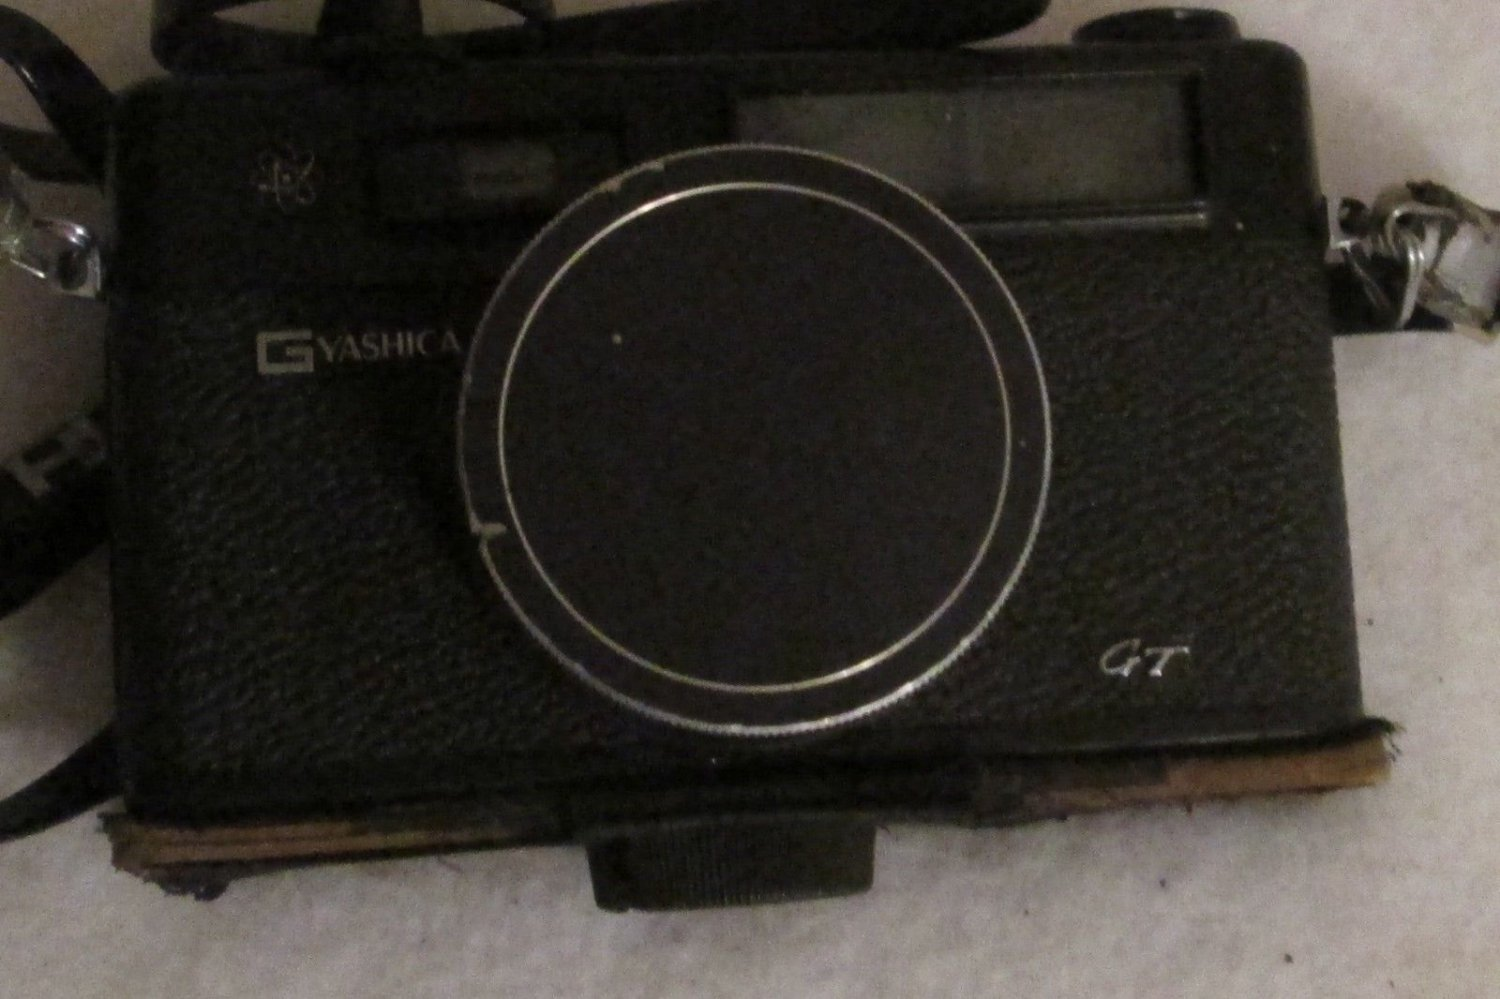 YASHICA ELECTRO 35 GT 35MM FILM CAMERA WITH MANUAL SN:01259709